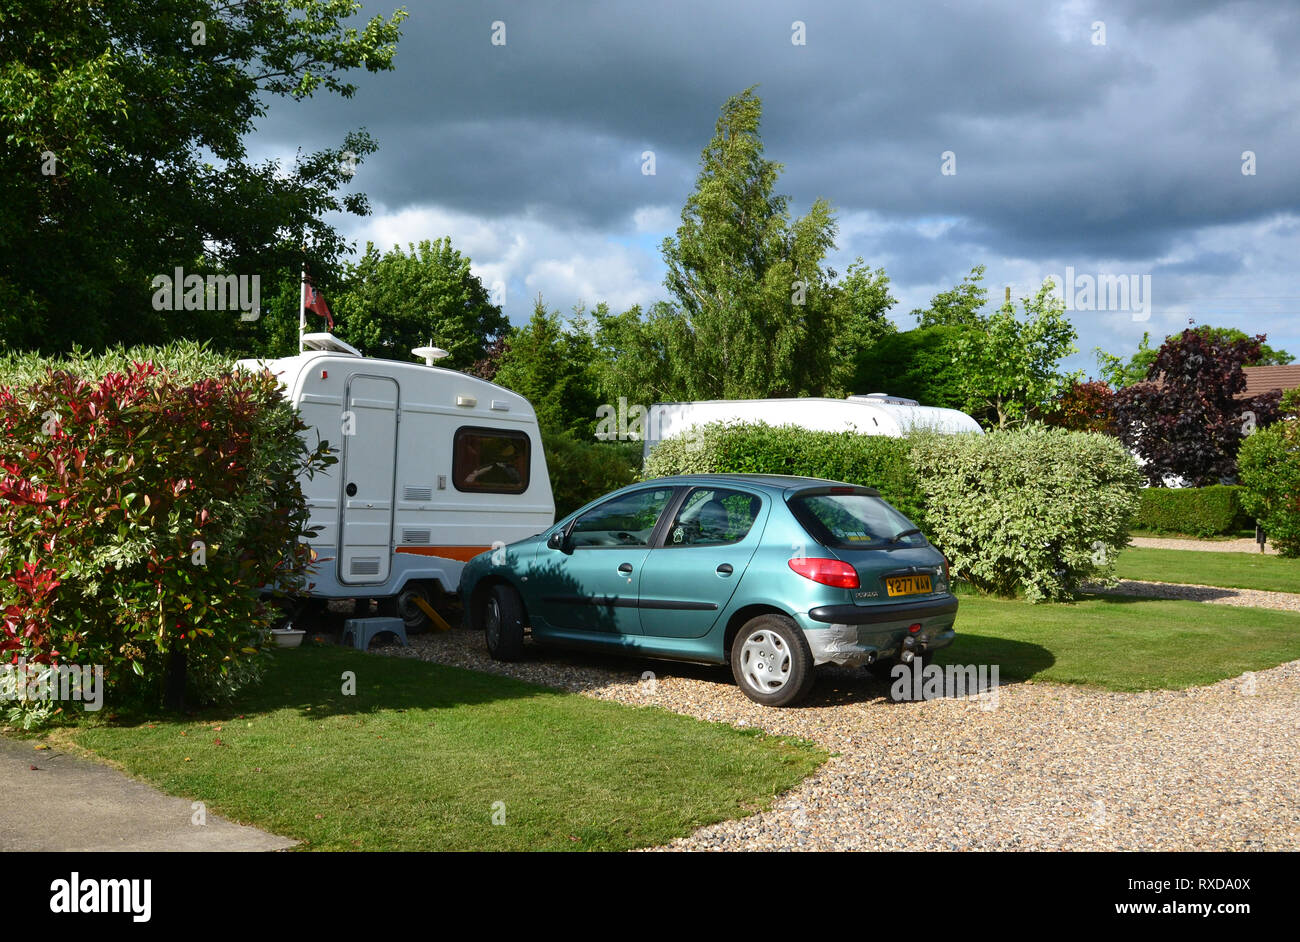 Polstead Camping and Caravanning Club Site, Polstead, Suffolk, UK - Stock Image